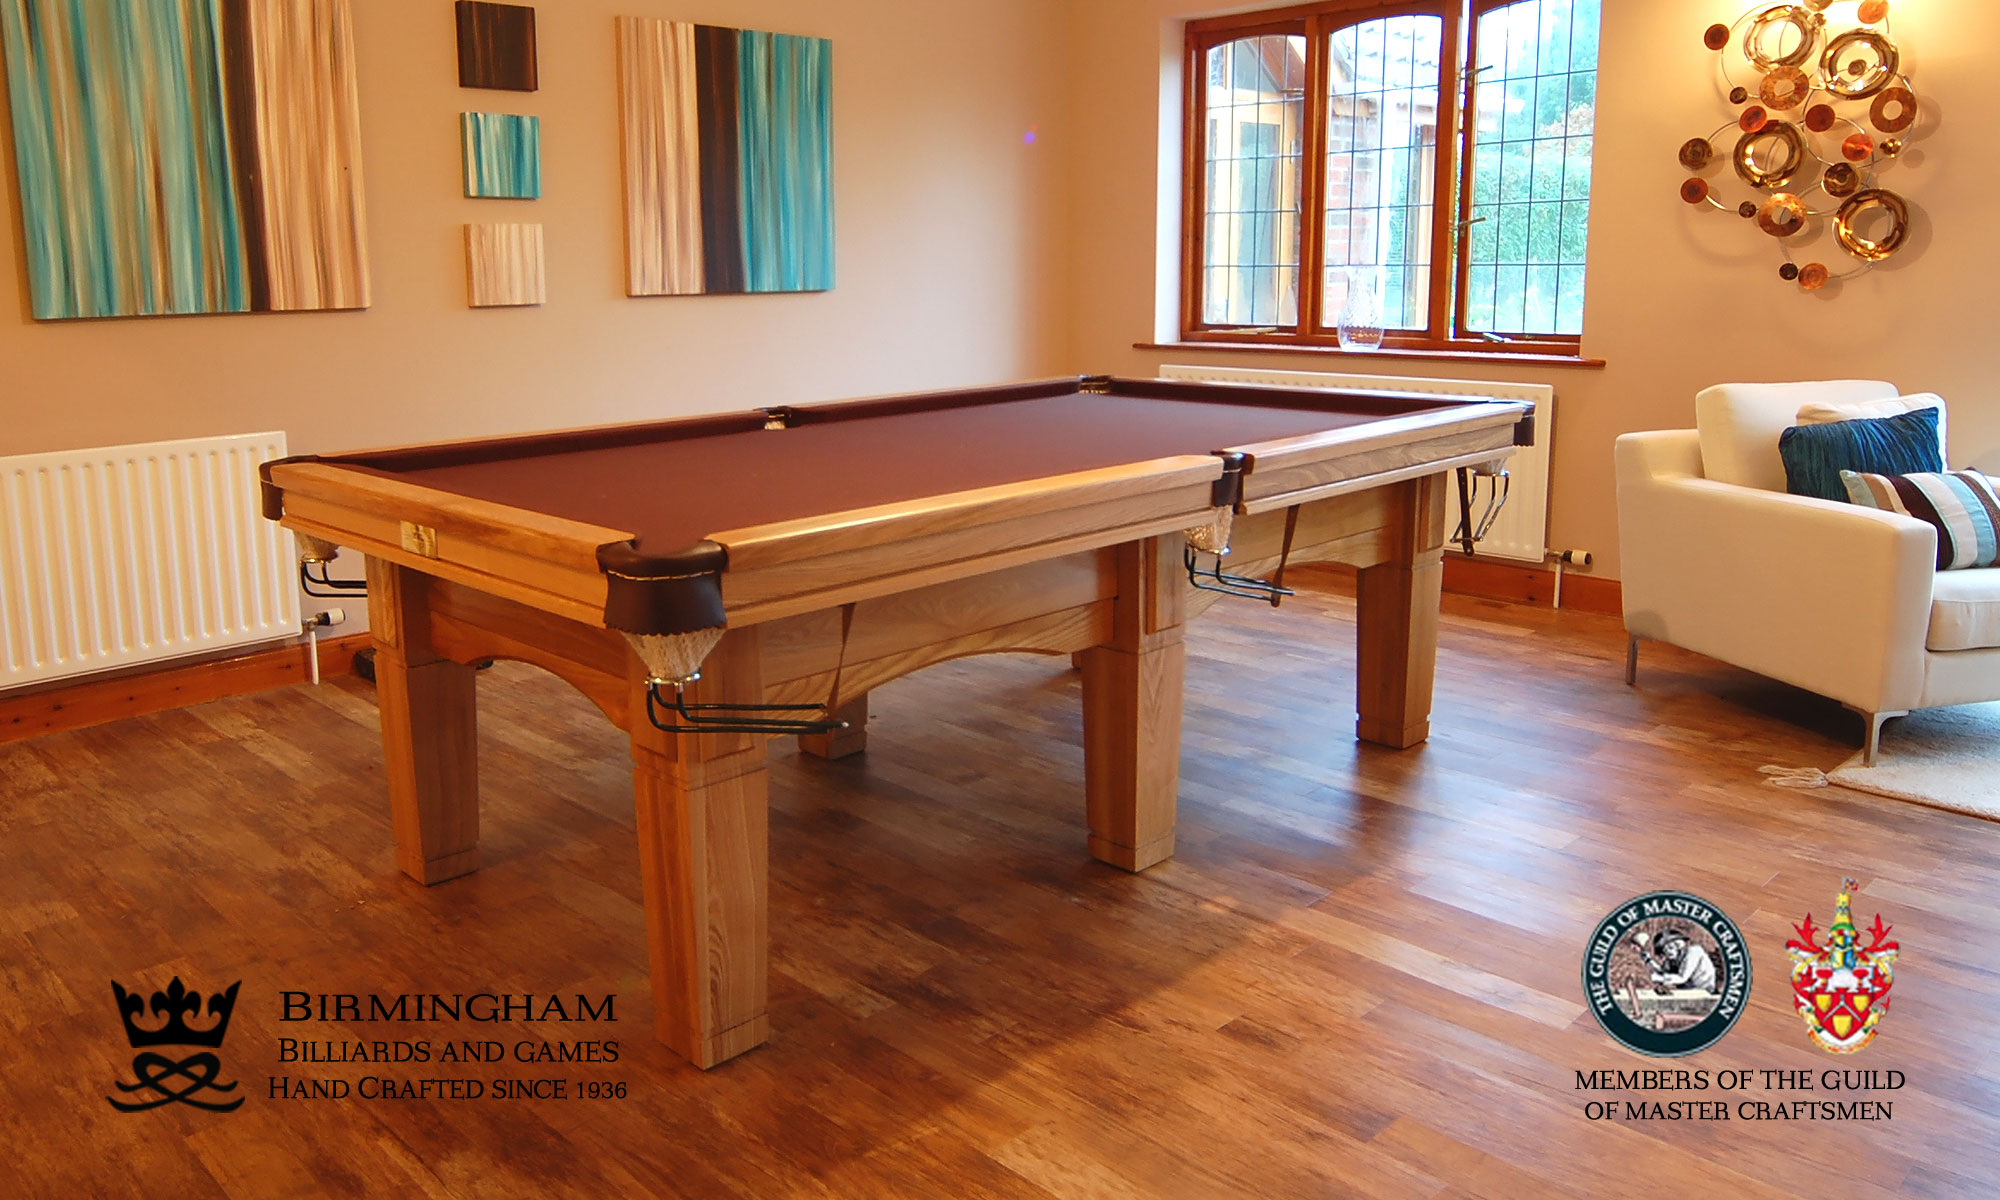 The Contemporary handmade pool table, light oak finish, tan baize